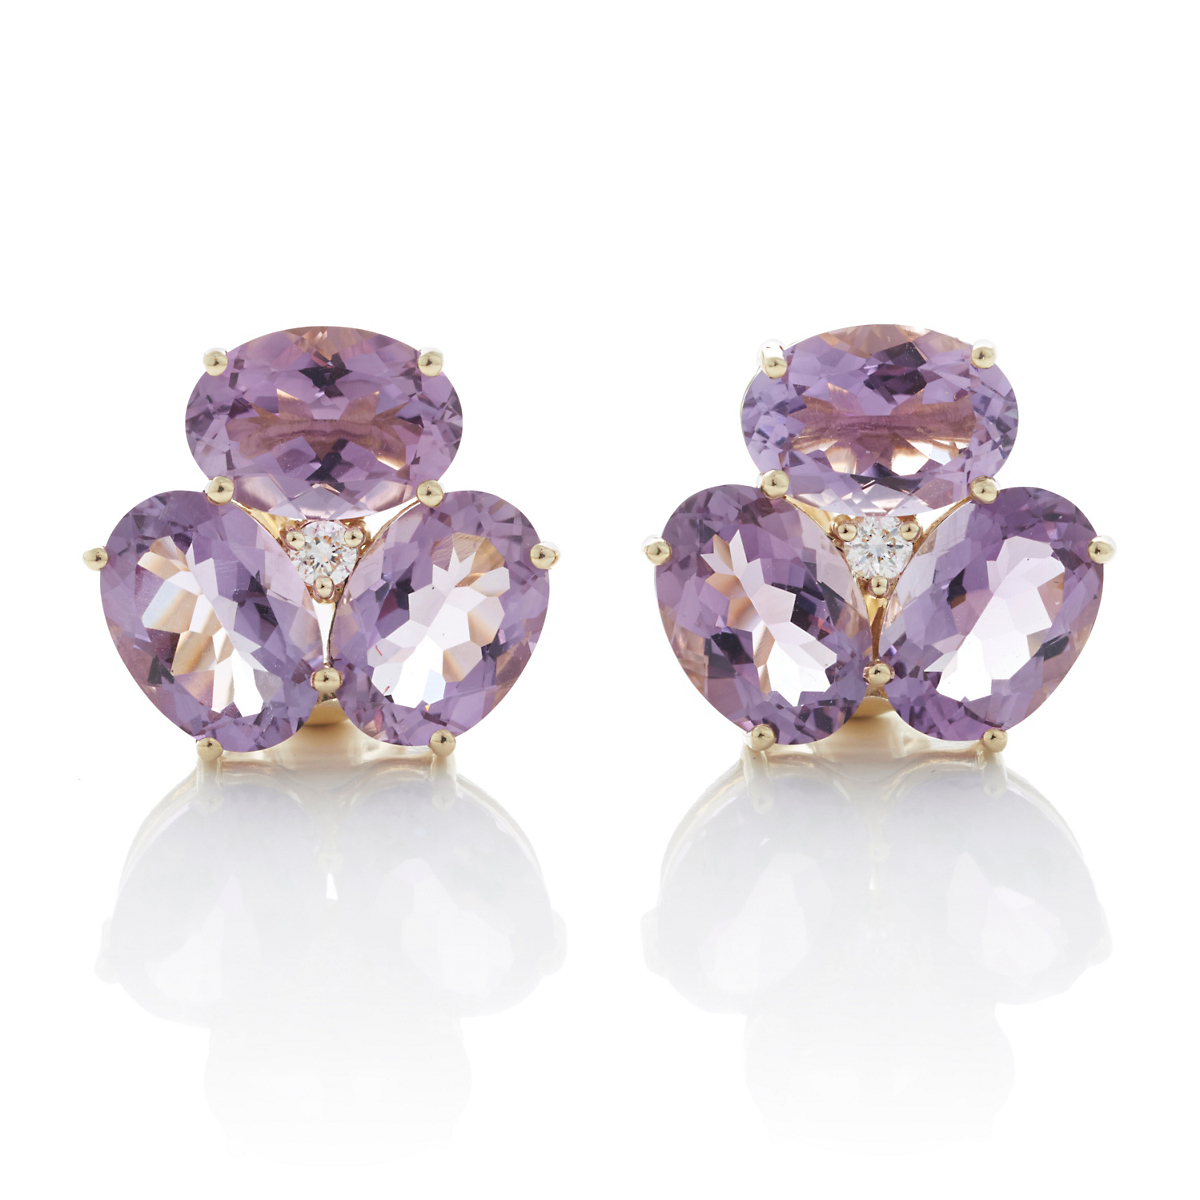 Gump's Faceted Amethyst Cluster Earrings